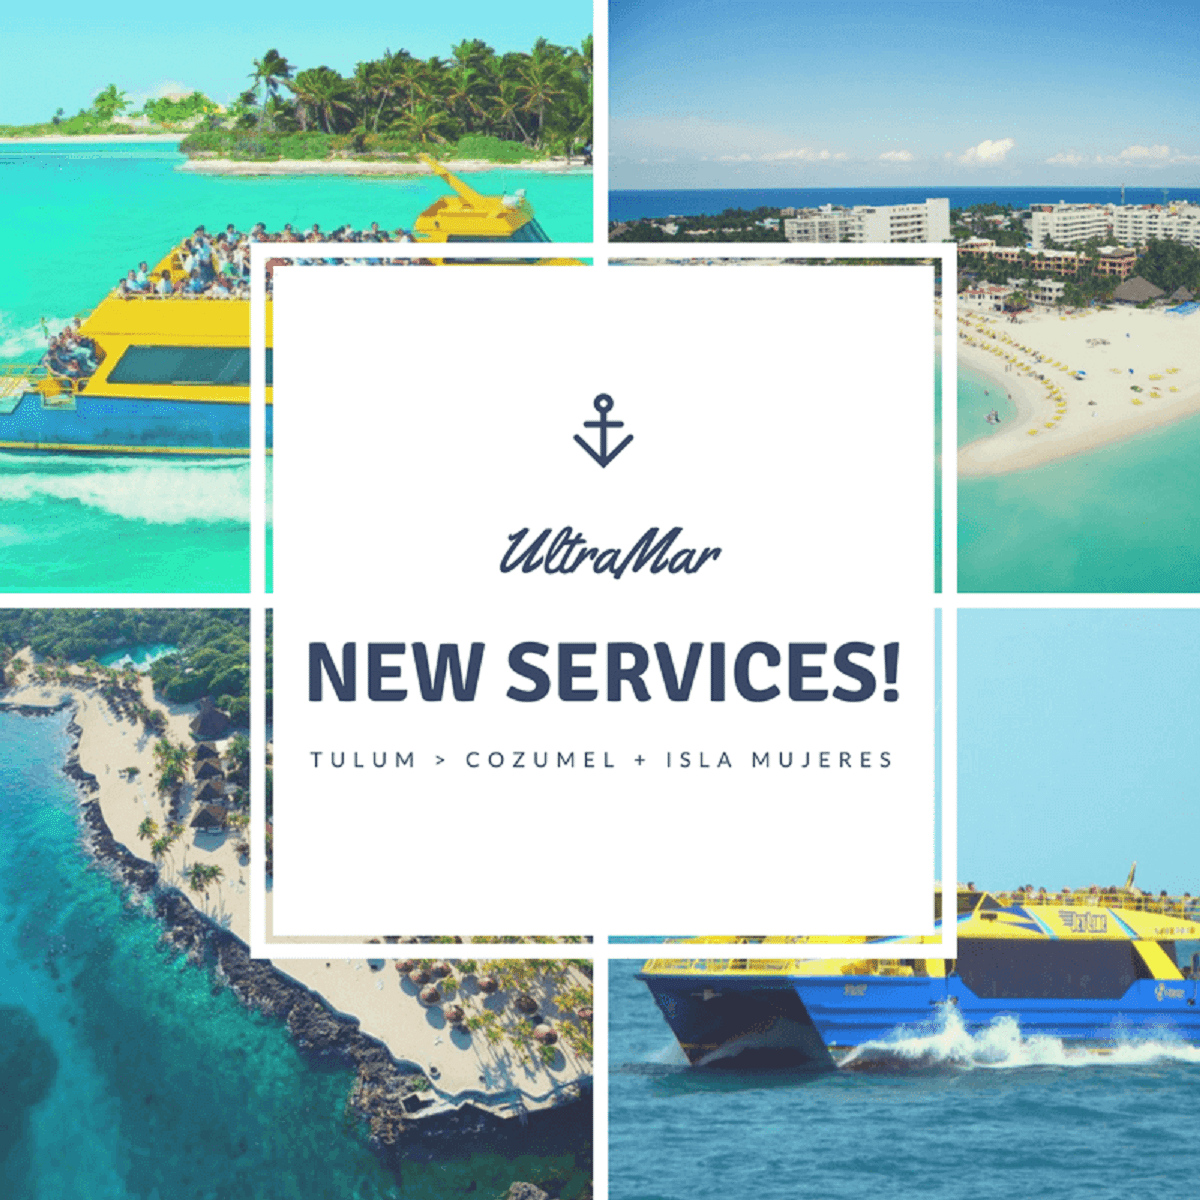 Ultramar's NEW Service Let's You Travel from TULUM to Isla Mujeres and Cozumel.